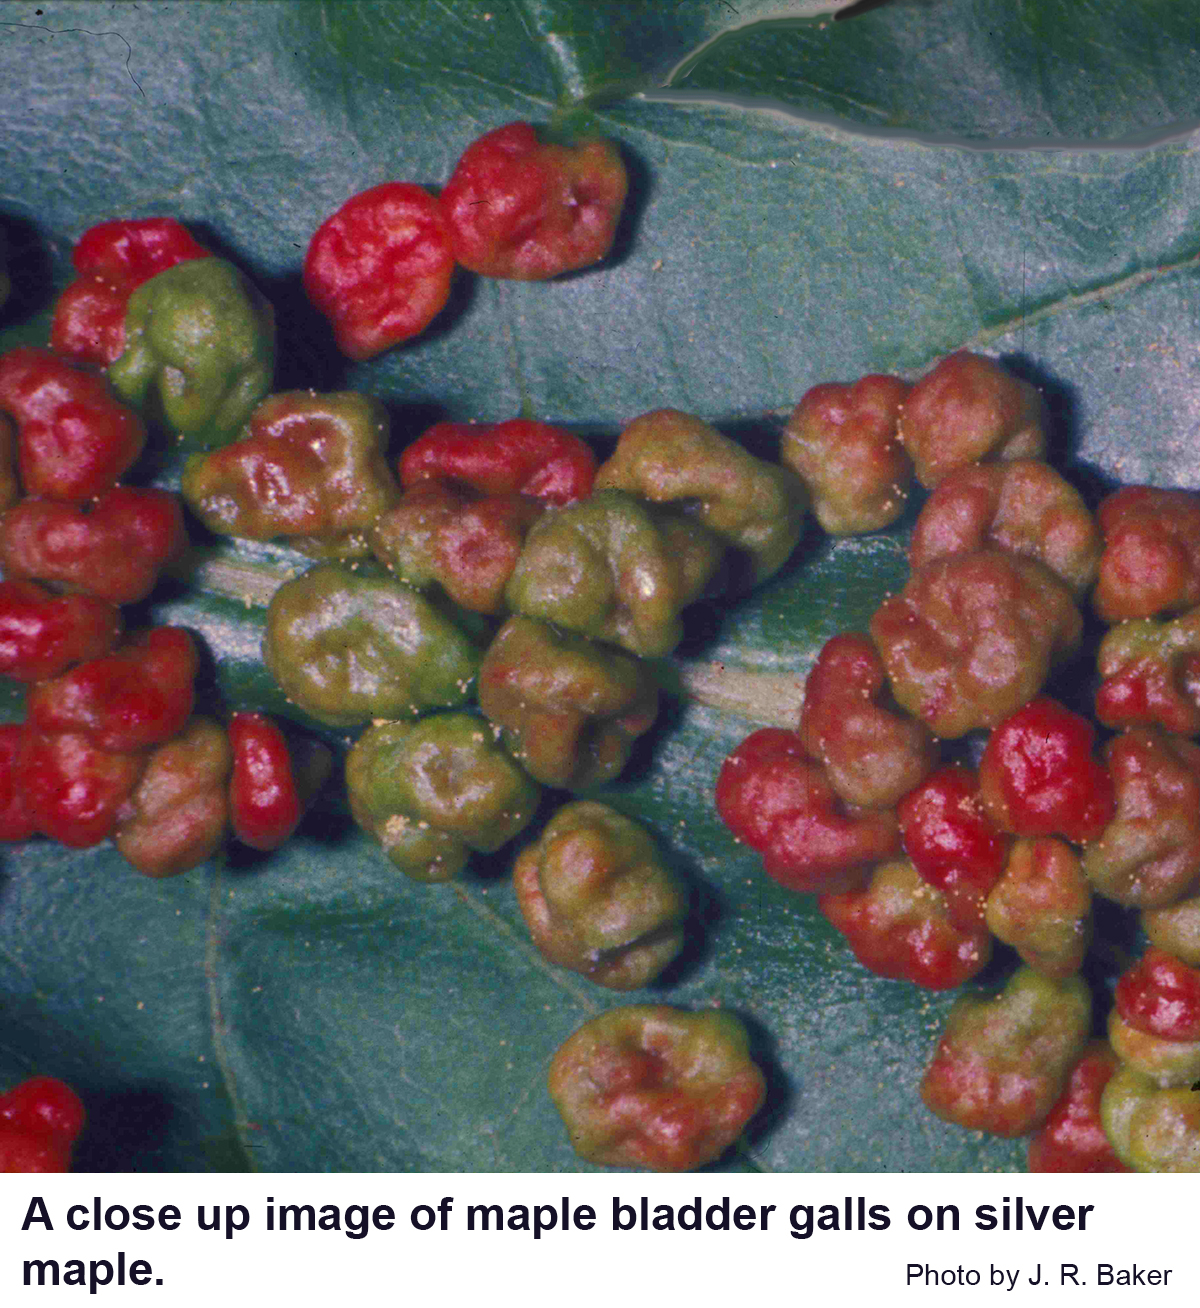 Maple bladder galls are well named!